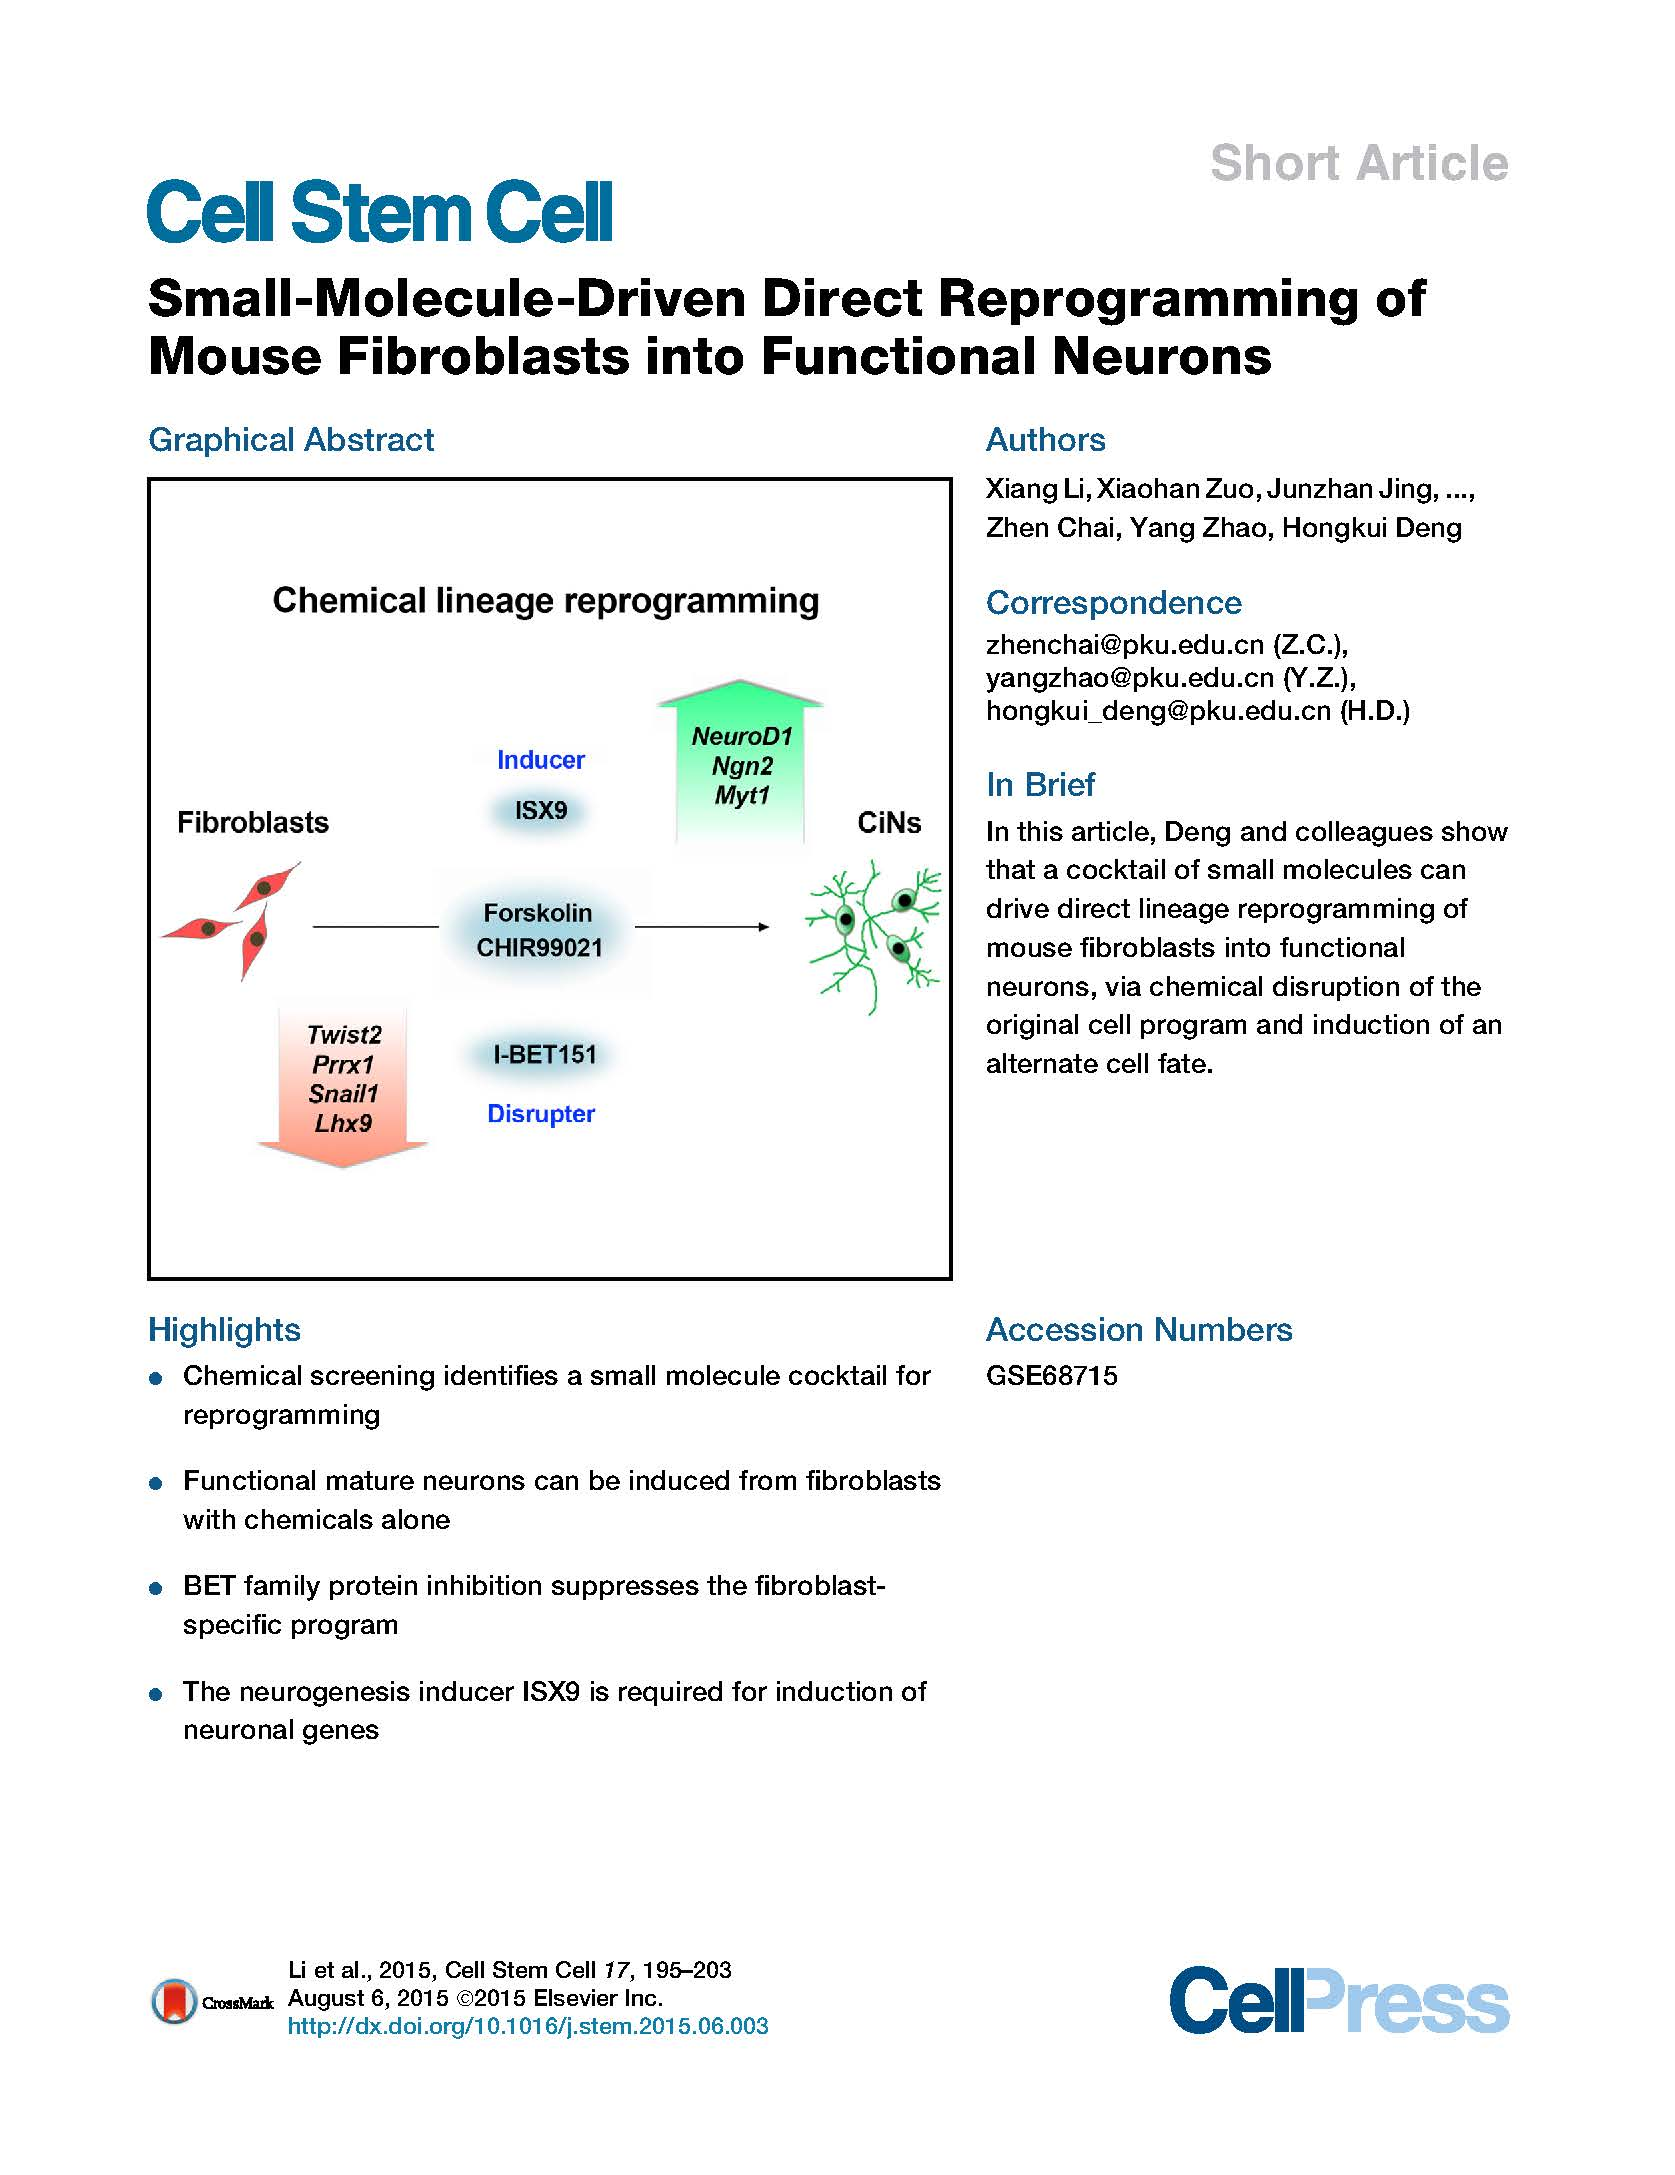 Small-Molecule-Driven-Direct-Reprogramming-of-Mouse-Fibroblasts-into-Functional-Neurons-1.jpg